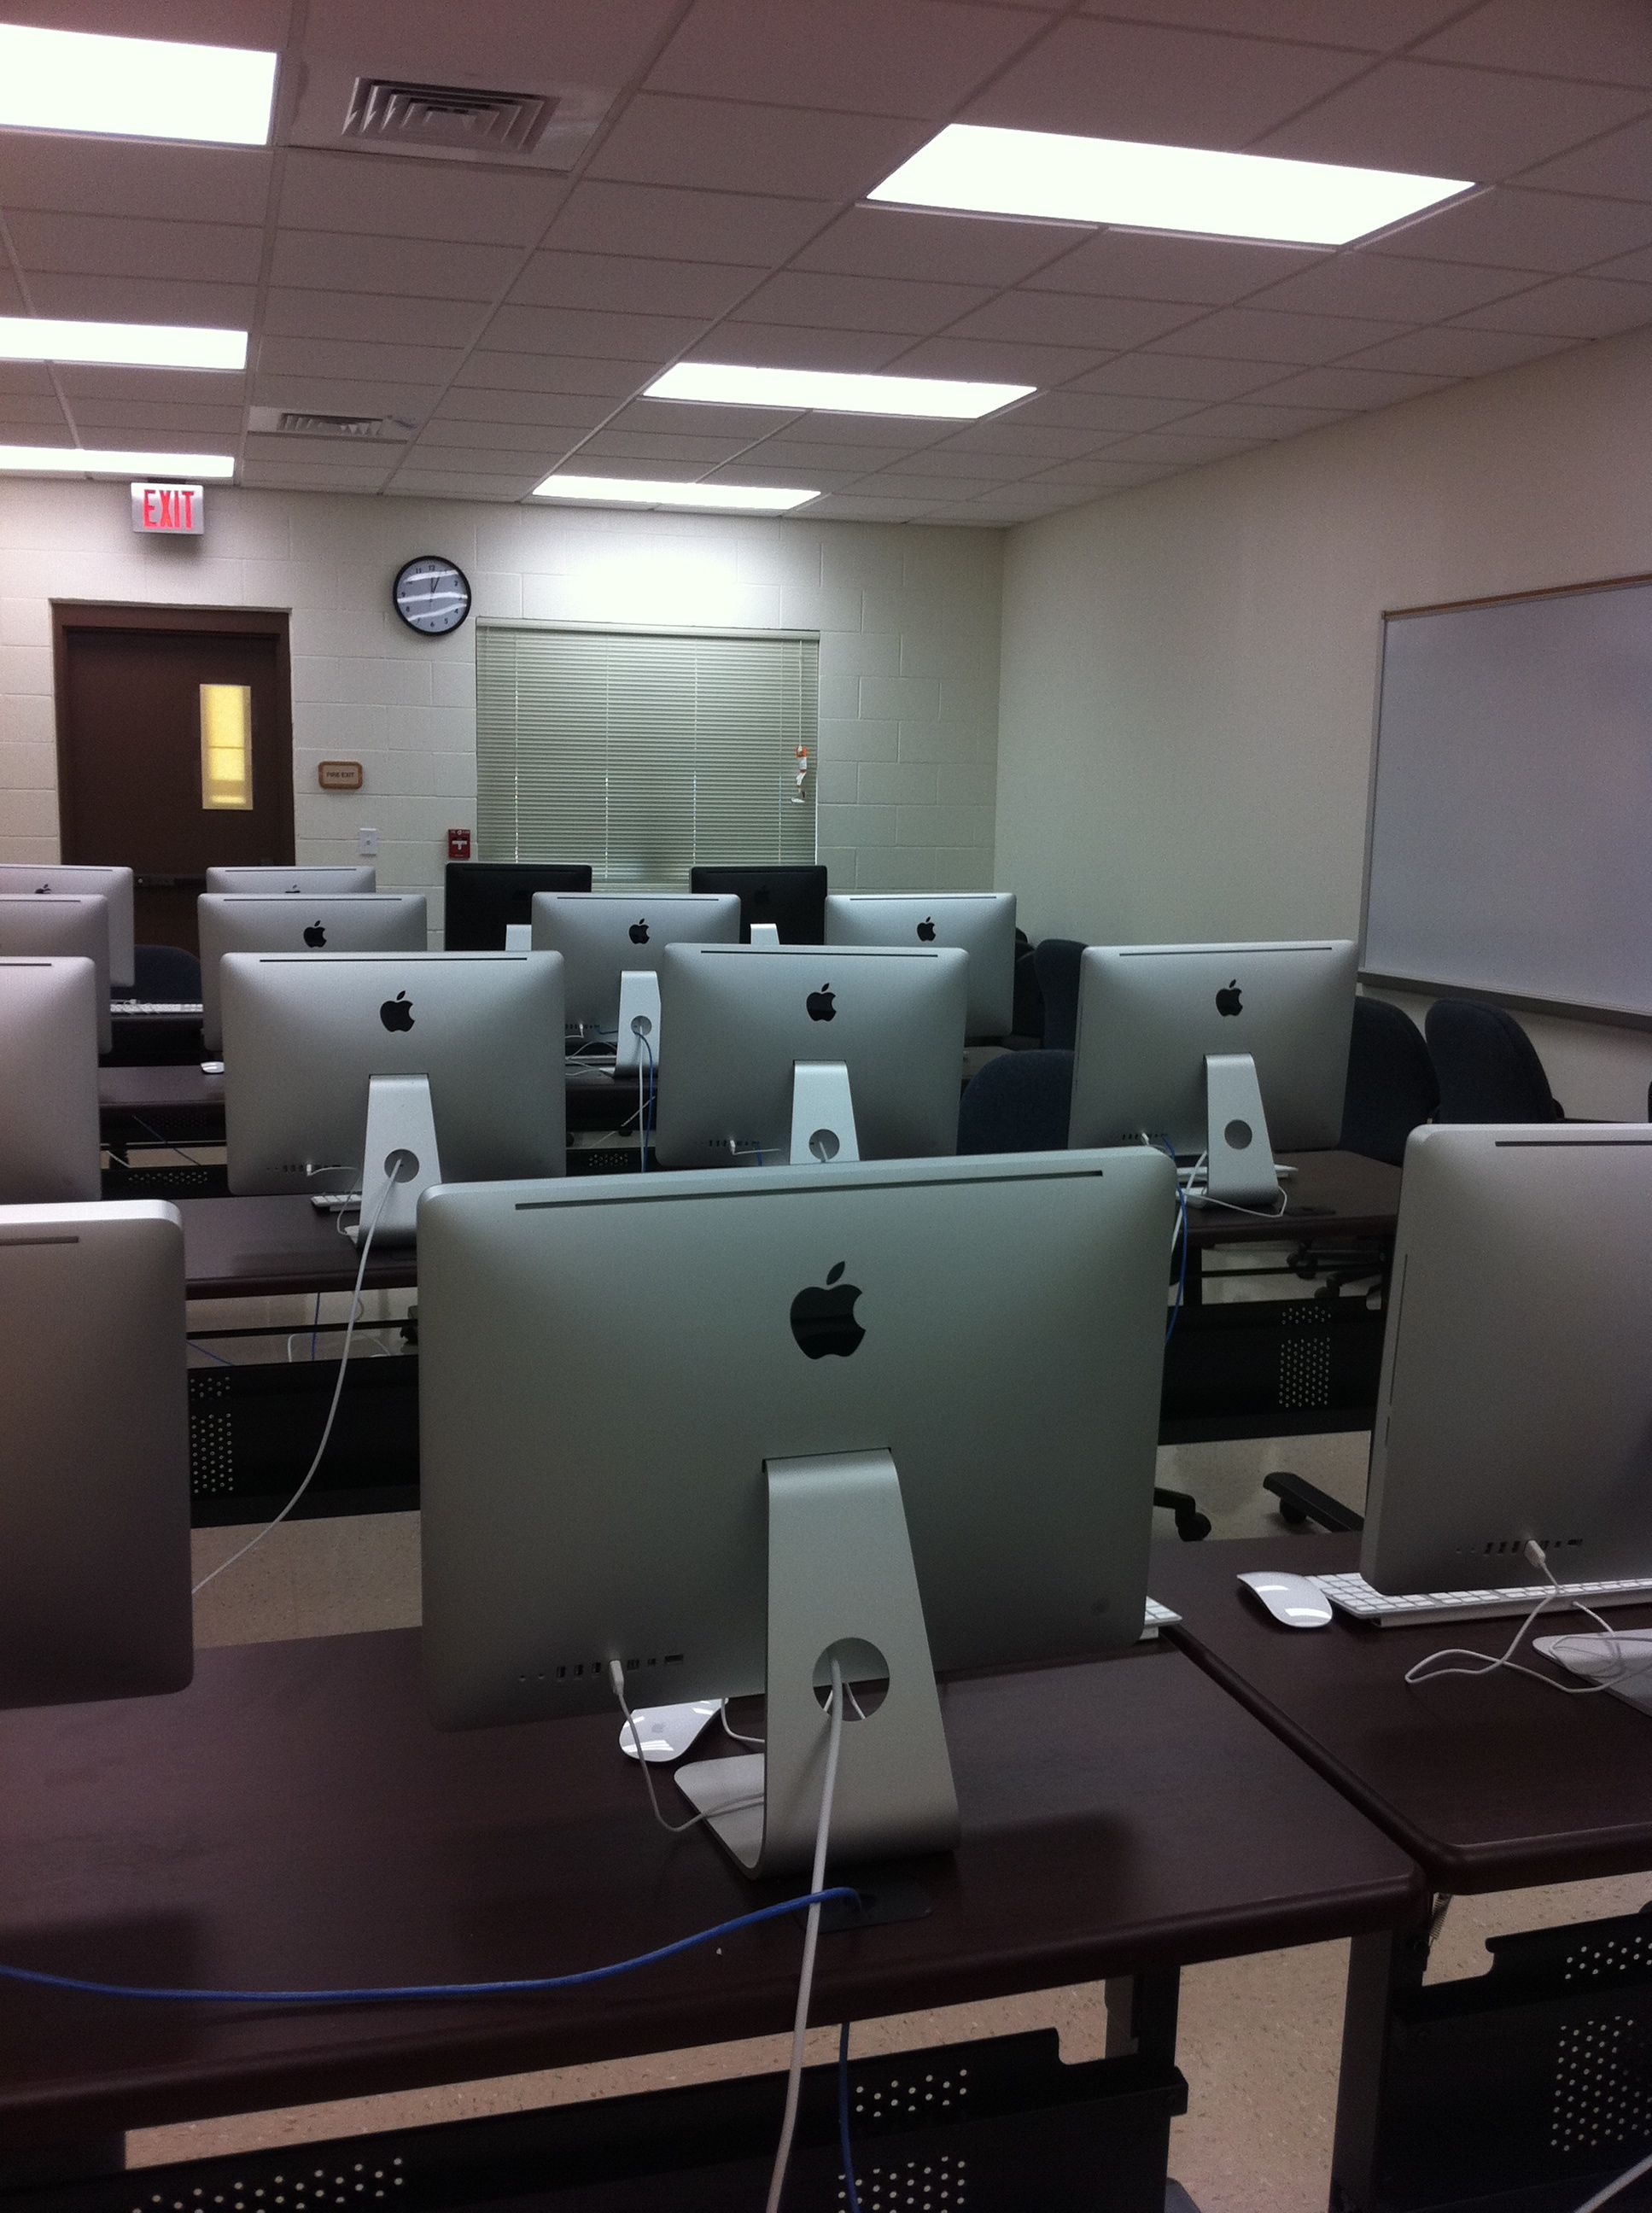 Computer lab at Kauai Community College Office of Continuing